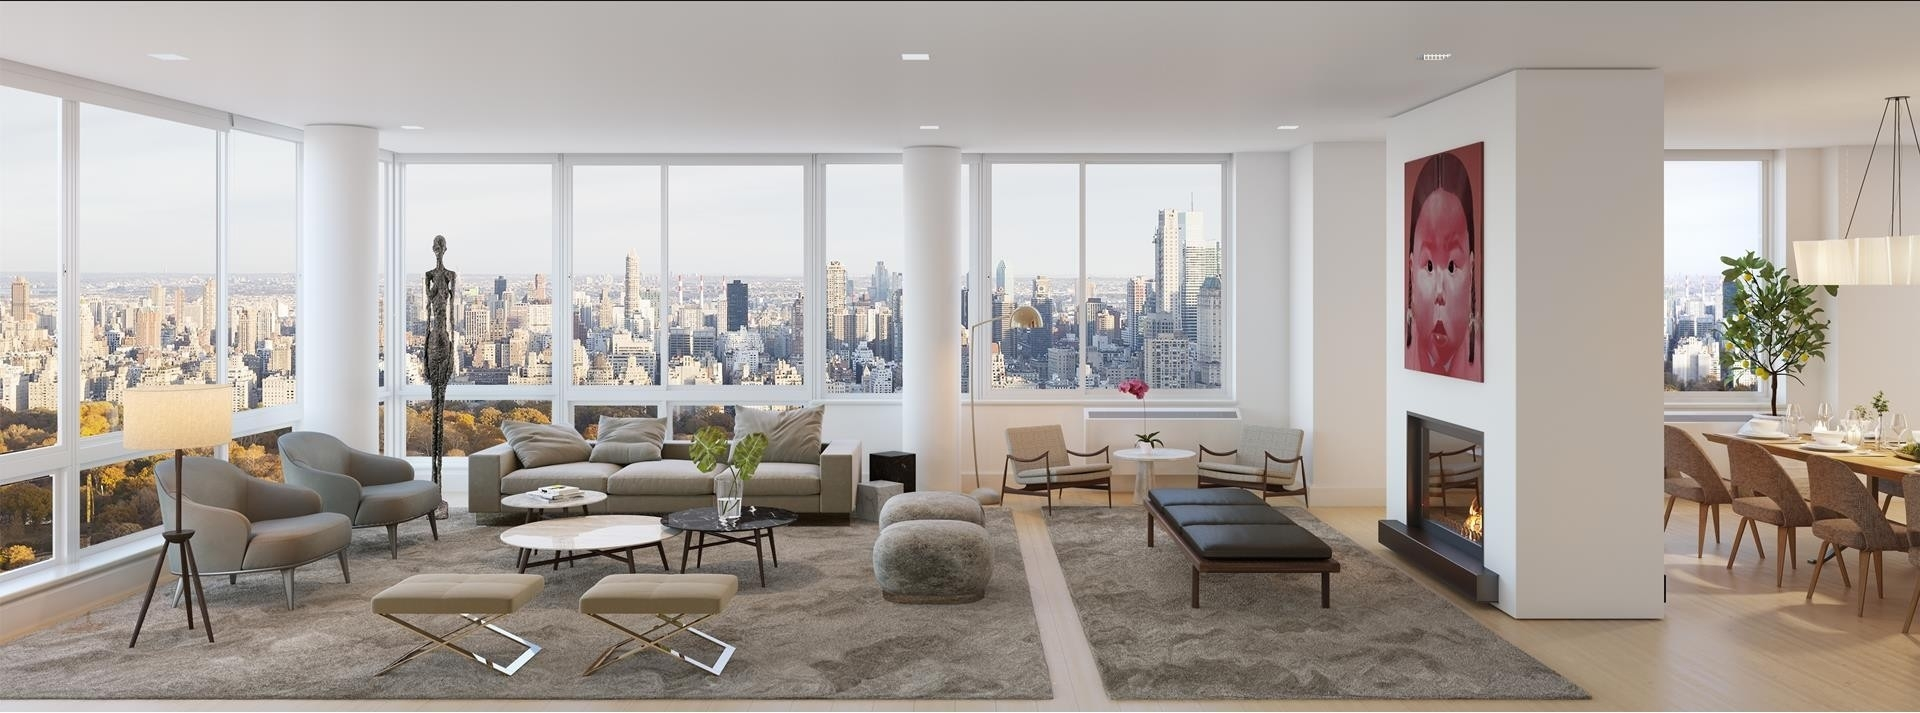 Condominium for Sale at The Millennium Tower, 101 West 67th St, PH2A Lincoln Square, New York, NY 10023